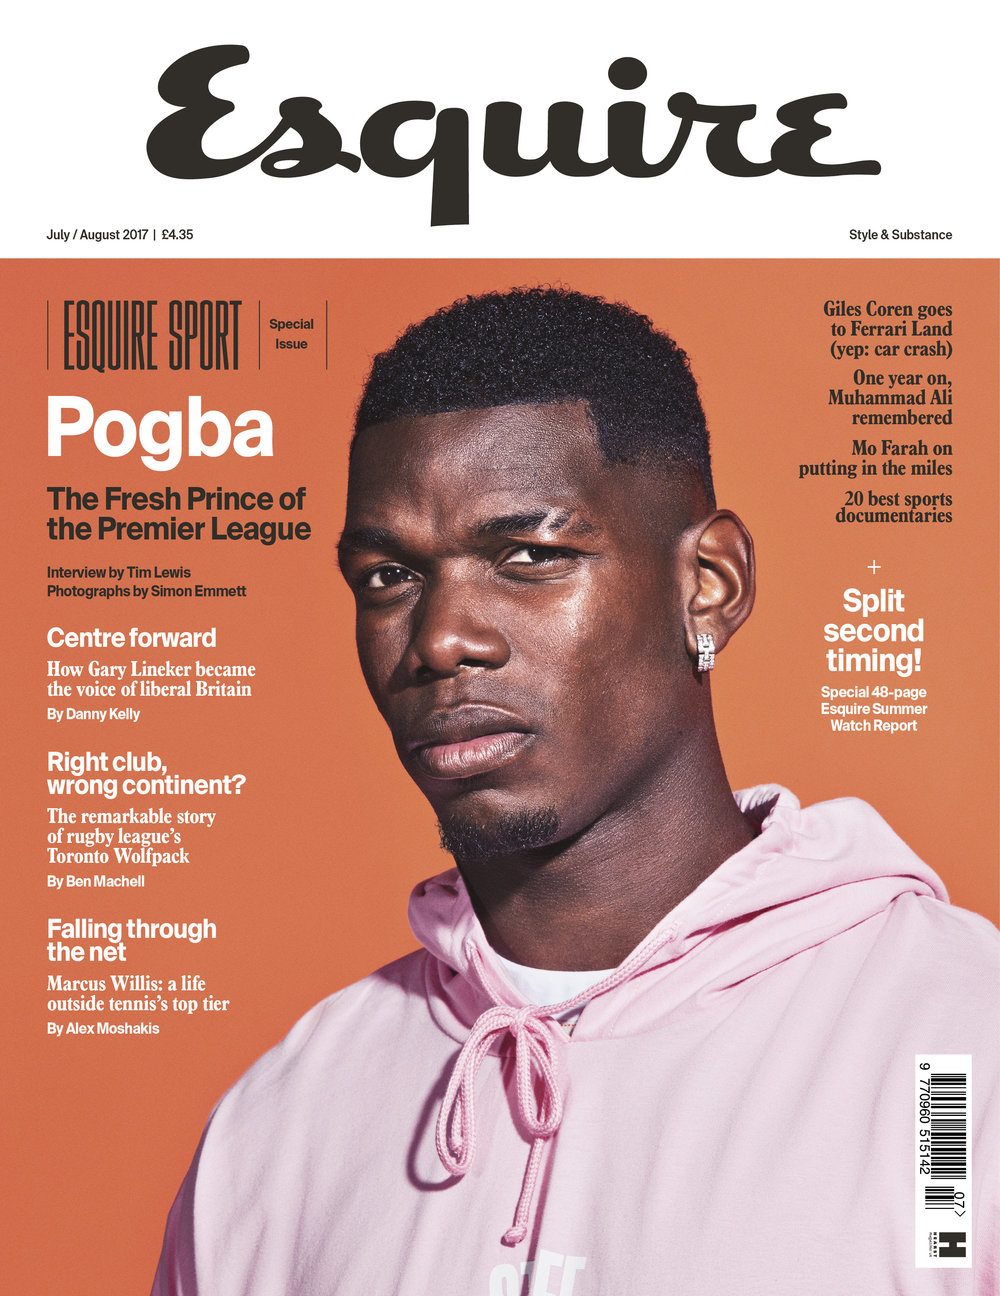 Pogba main cover.jpg